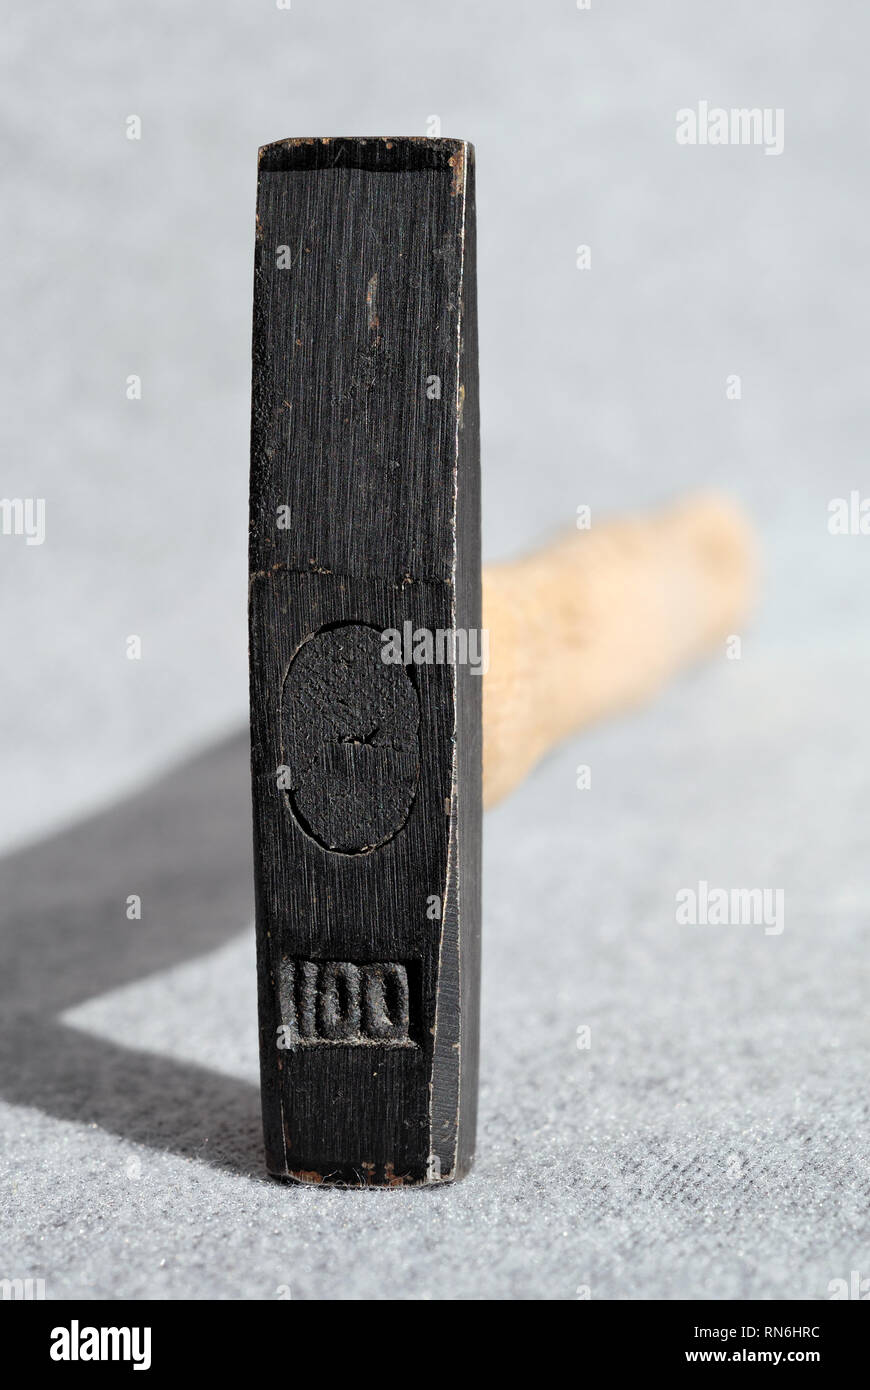 Small hammer for housework closeup. Shallow depth of field - Stock Image